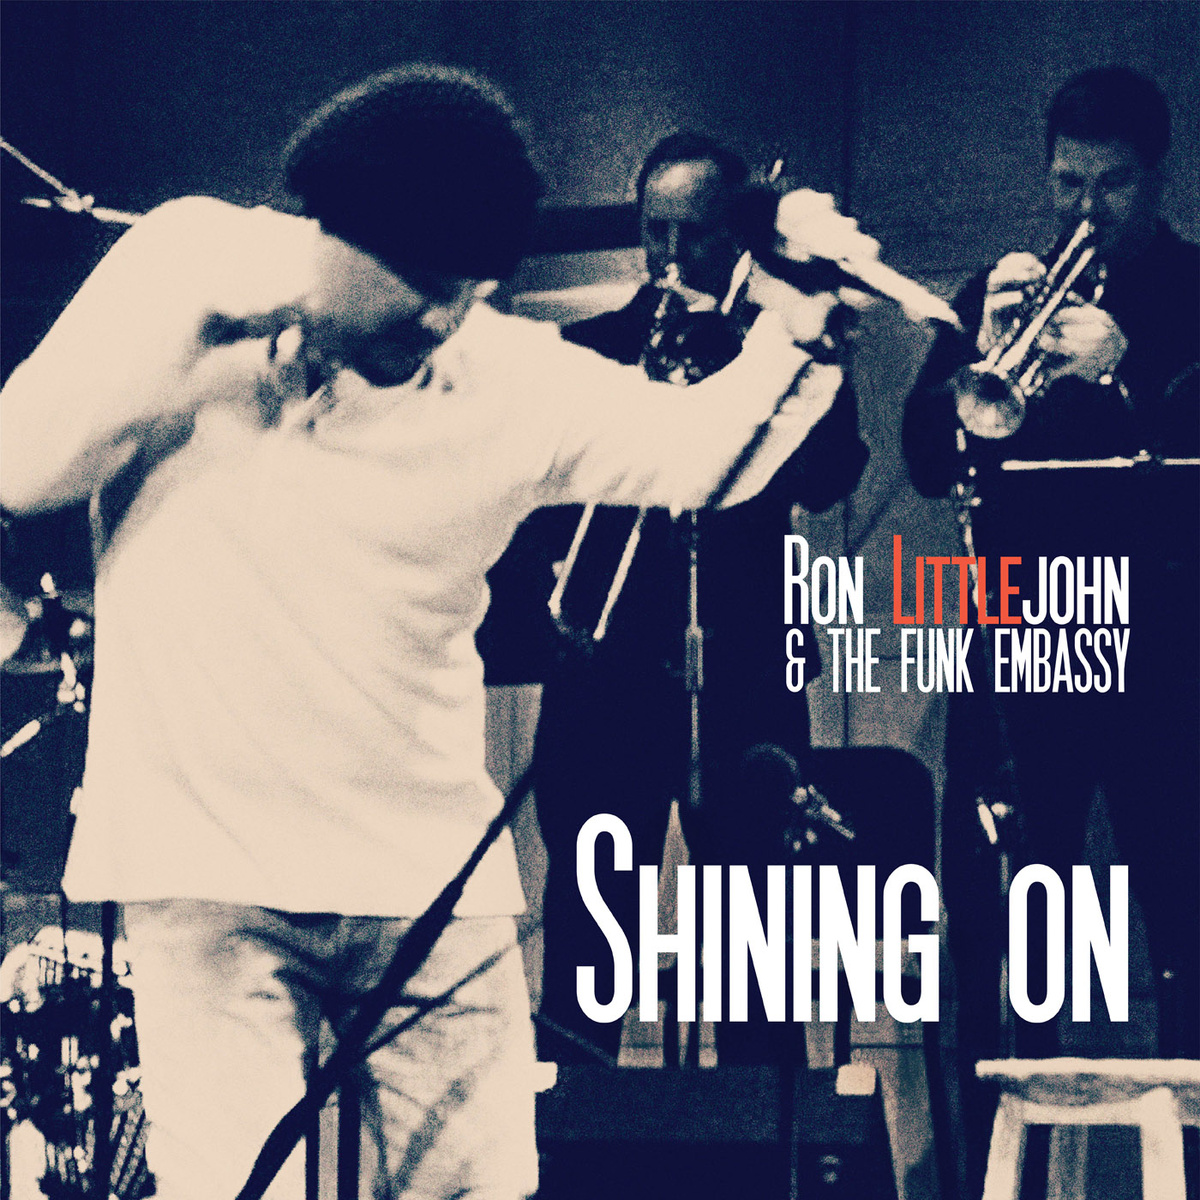 Album Review: Shining On By Ron Littlejohn & The Funk Embassy